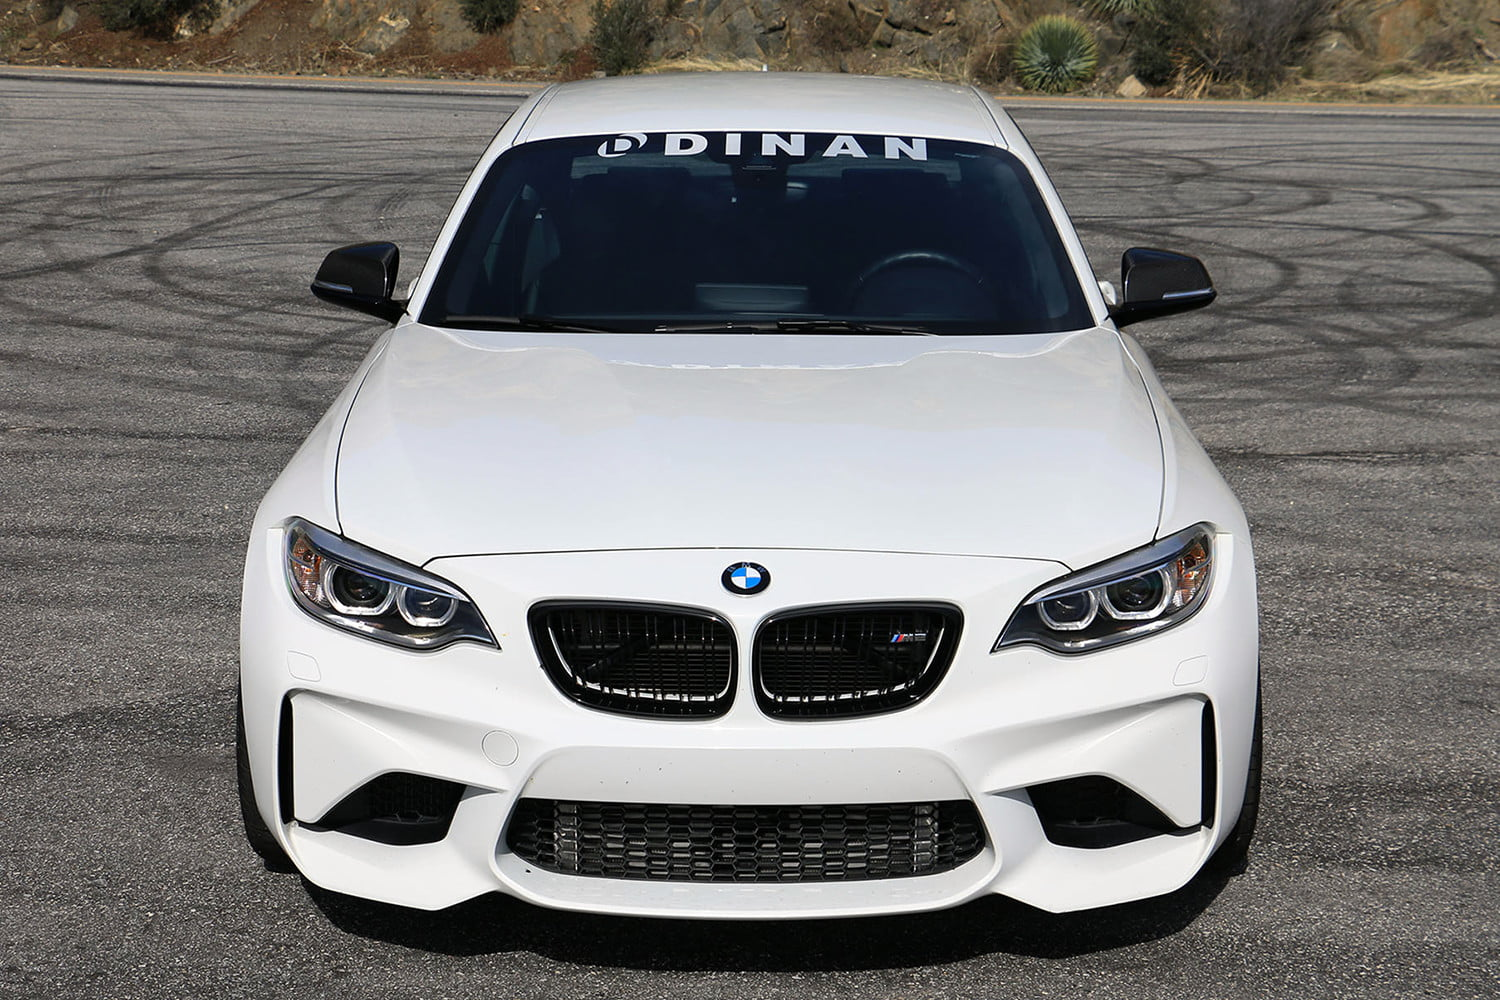 bmw tuner dinan gives the m2 a performance focused makeover we go for spin img 5546